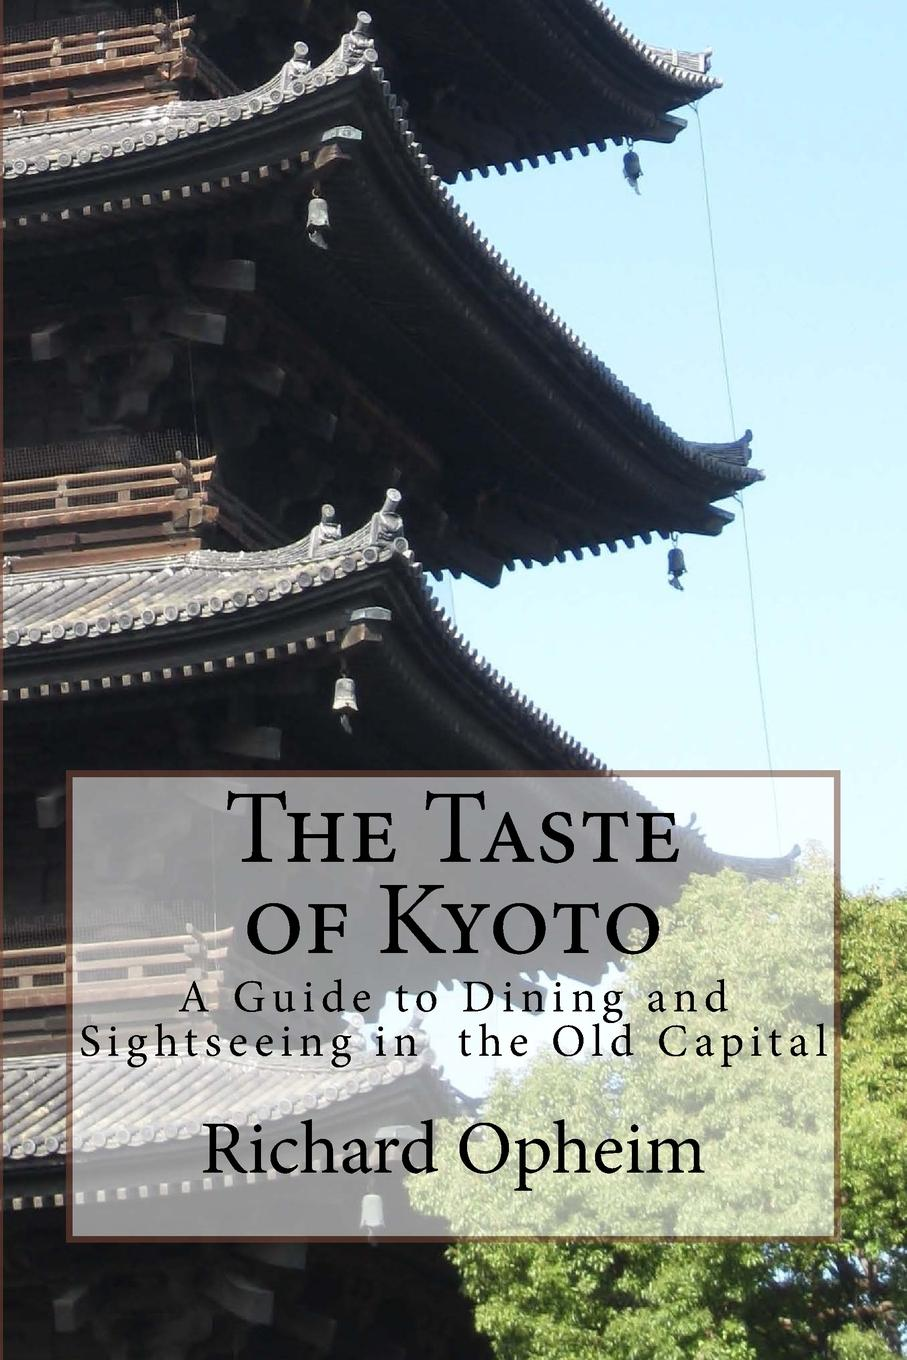 Richard Opheim The Taste of Kyoto. A Guide to Dining and Sightseeing in the Old Capital